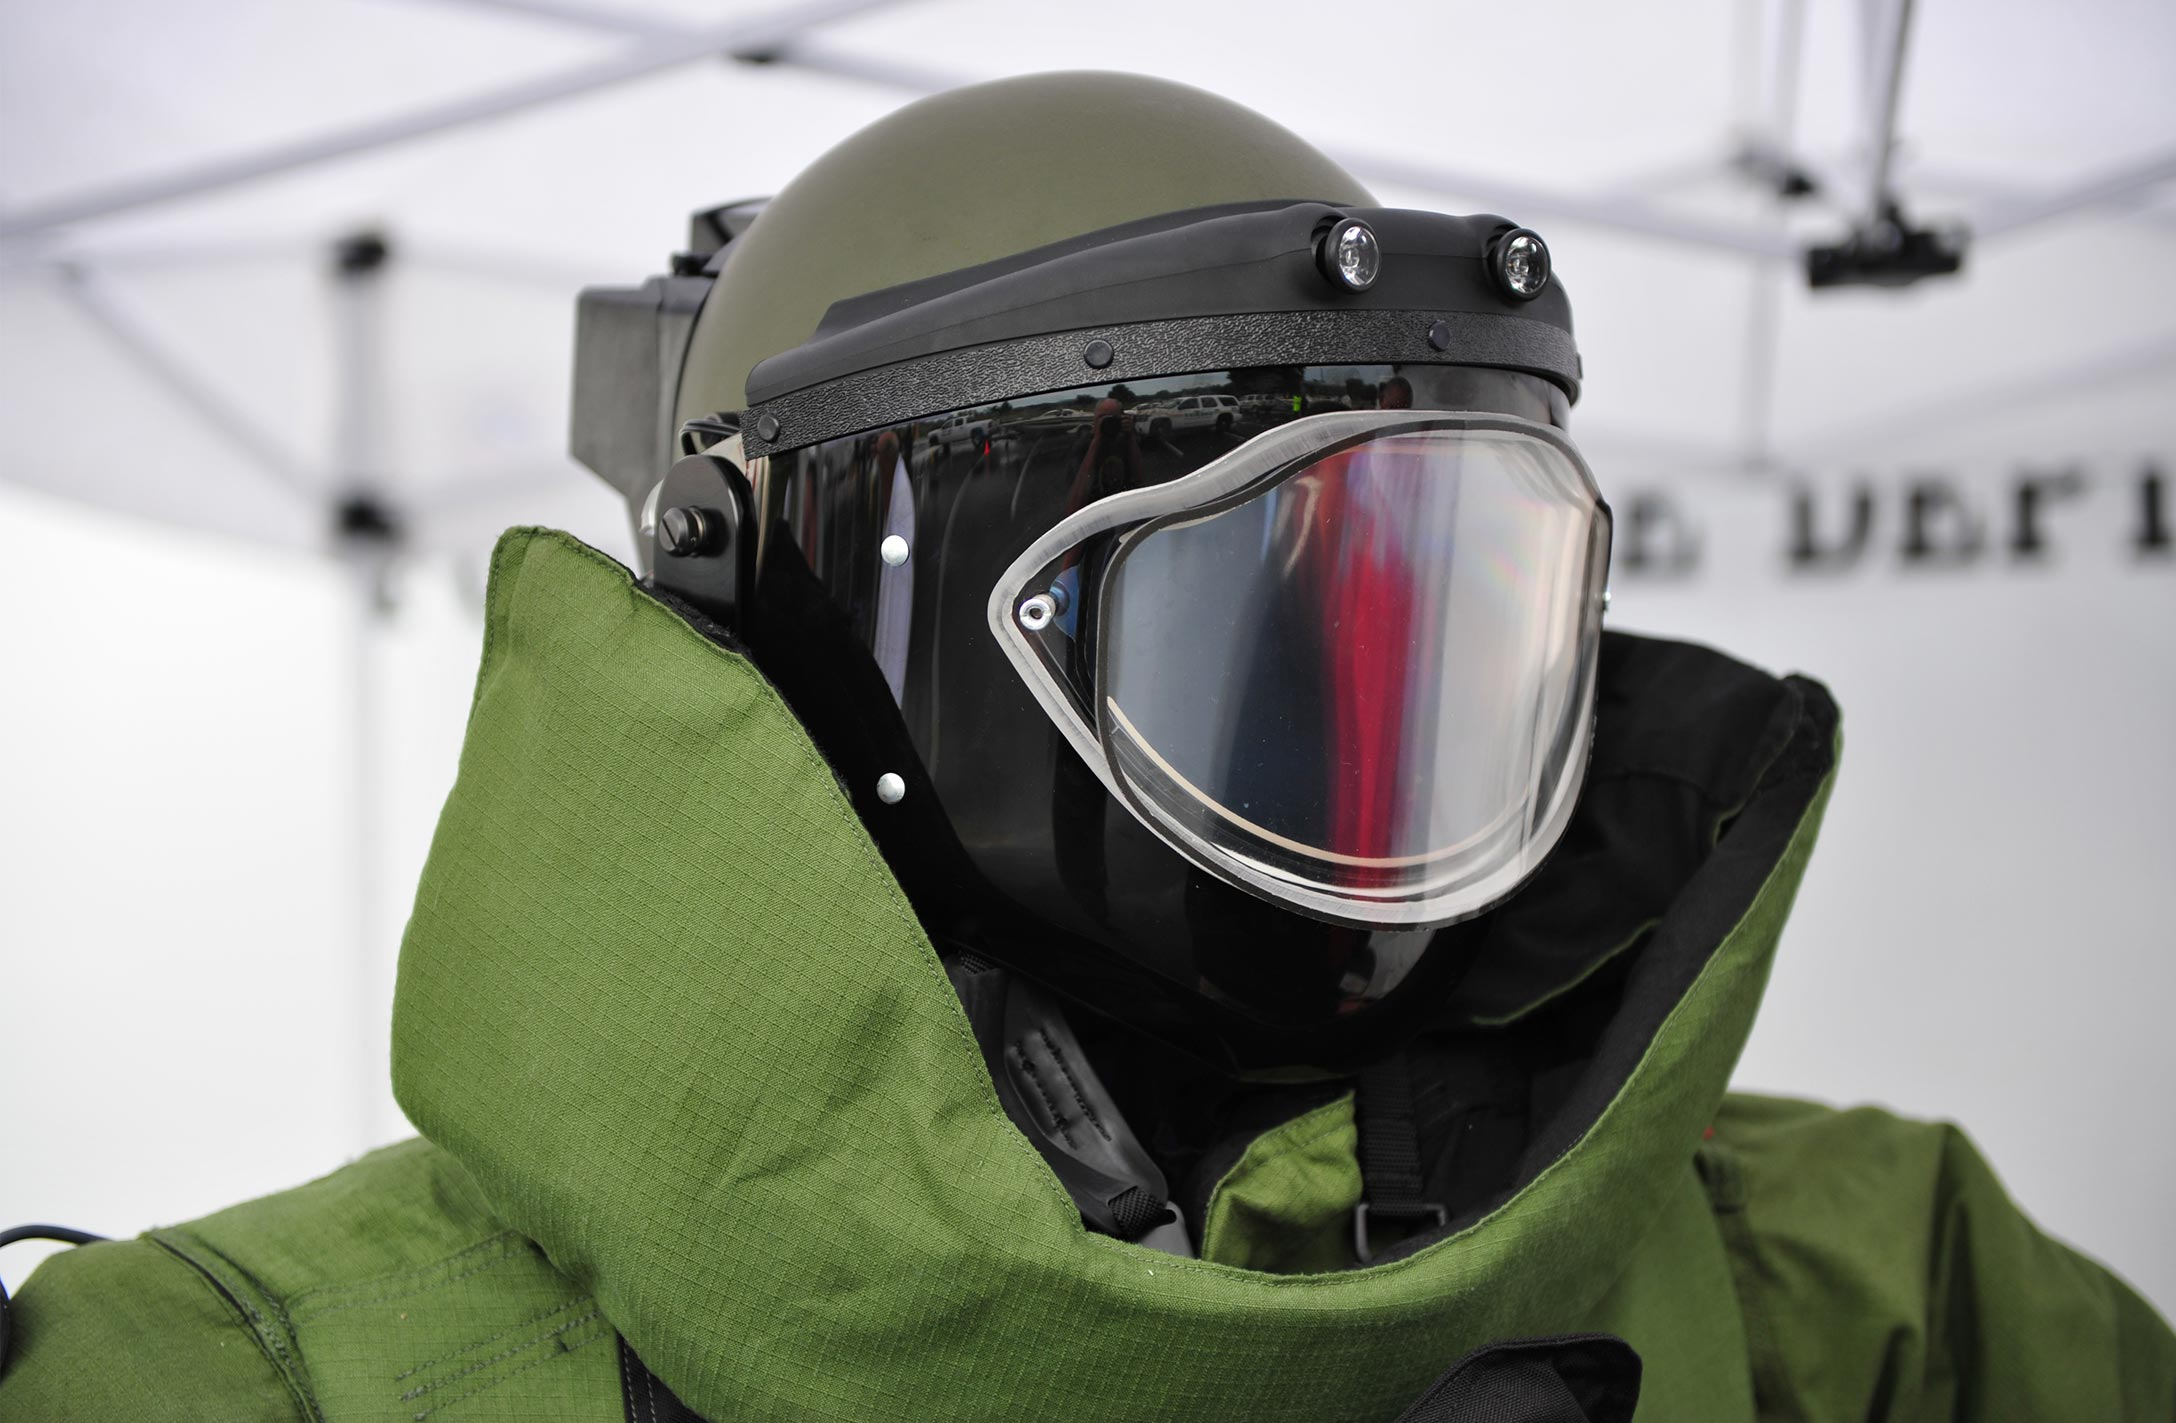 Person in military helmet, goggles, and jacket.